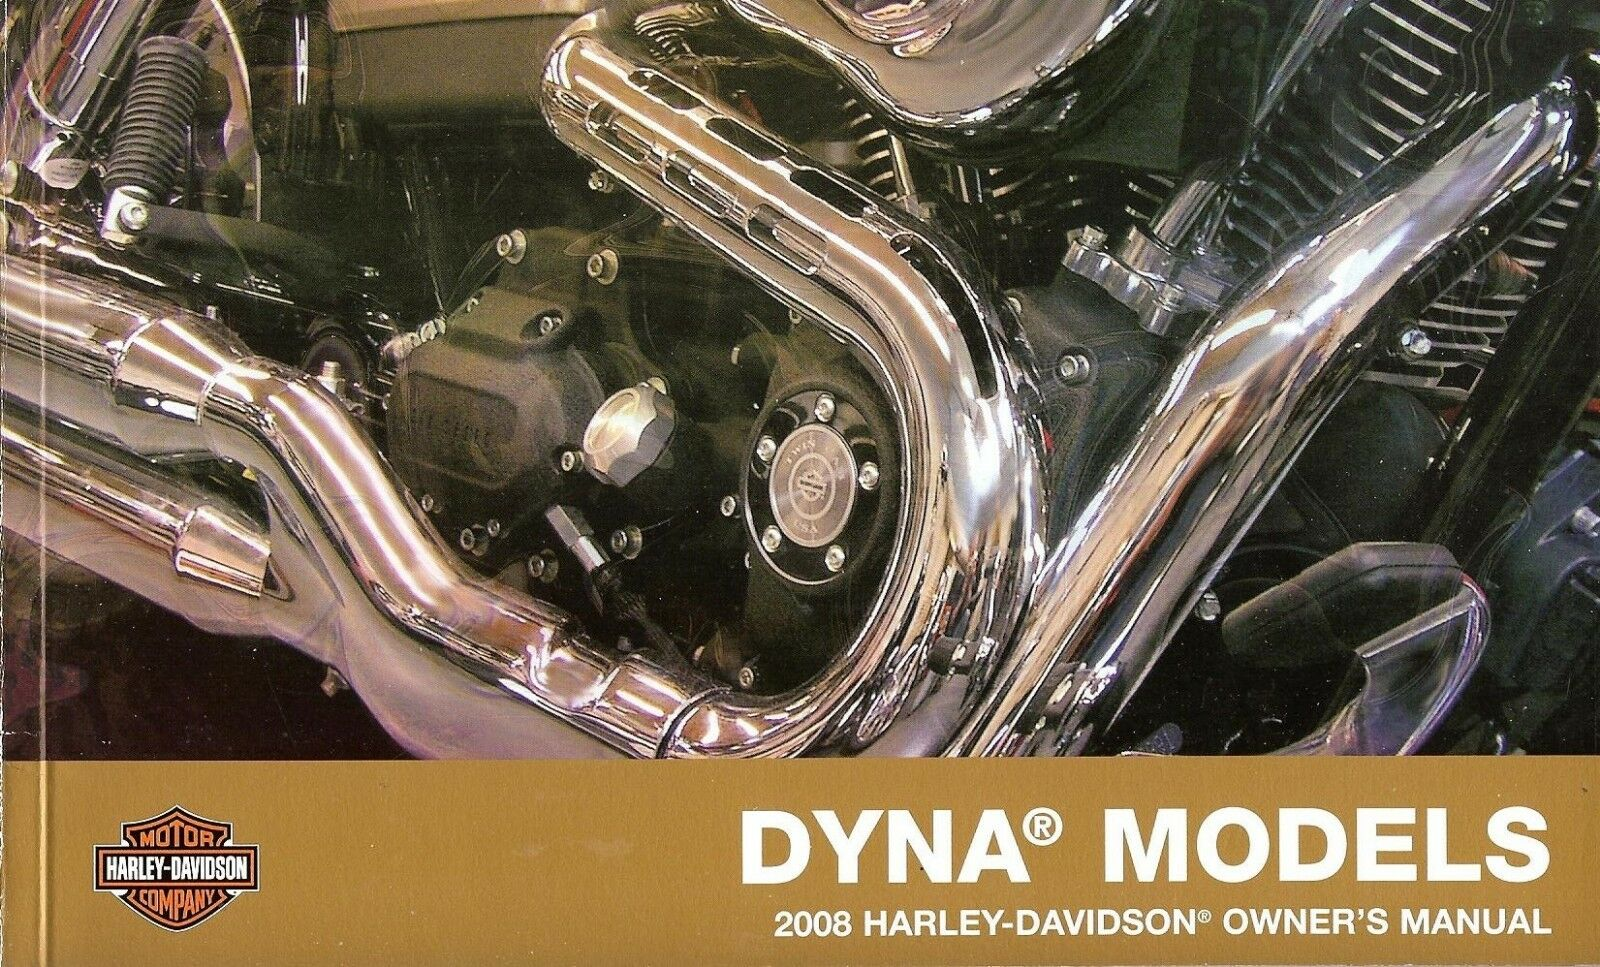 2008 HARLEY-DAVIDSON DYNA OWNERS MANUAL -FXDWG-FXD-FXDB-FXDC-FXDL